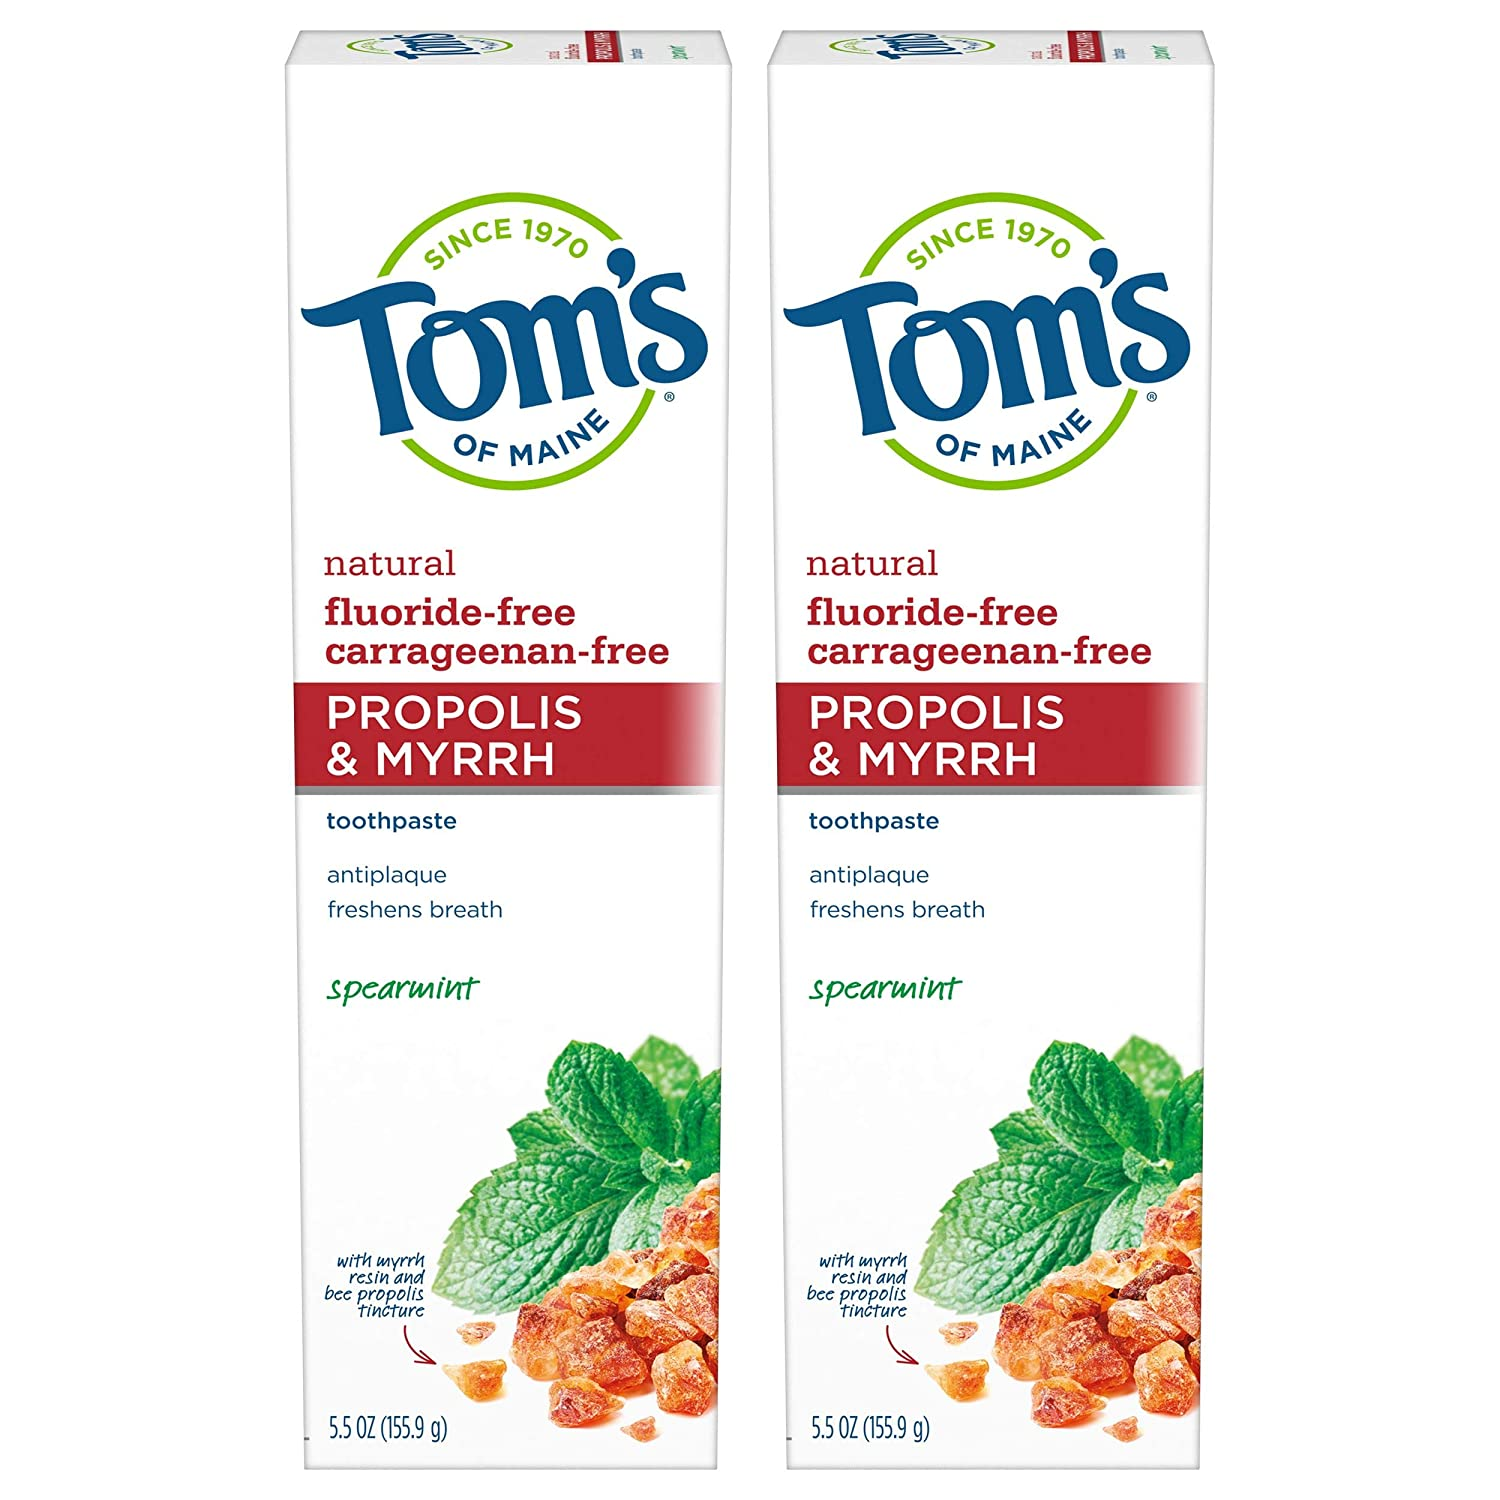 Tom's of Maine Fluoride-Free Propolis Myrrh High material Natural-Toothpaste New item